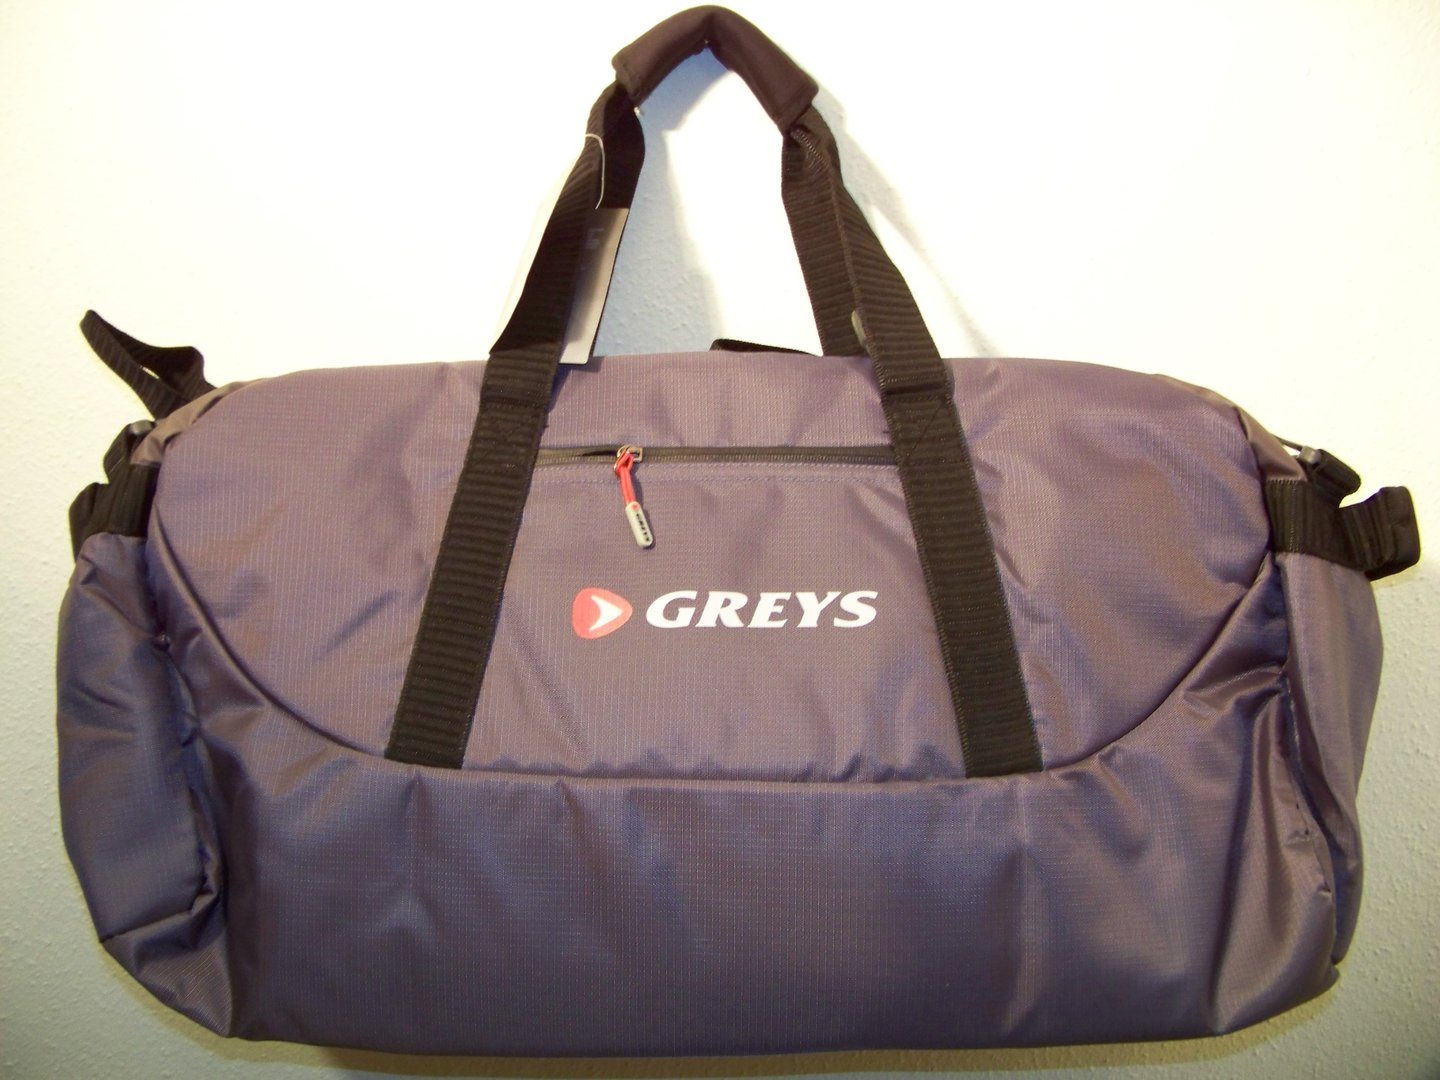 Greys Duffle Bag